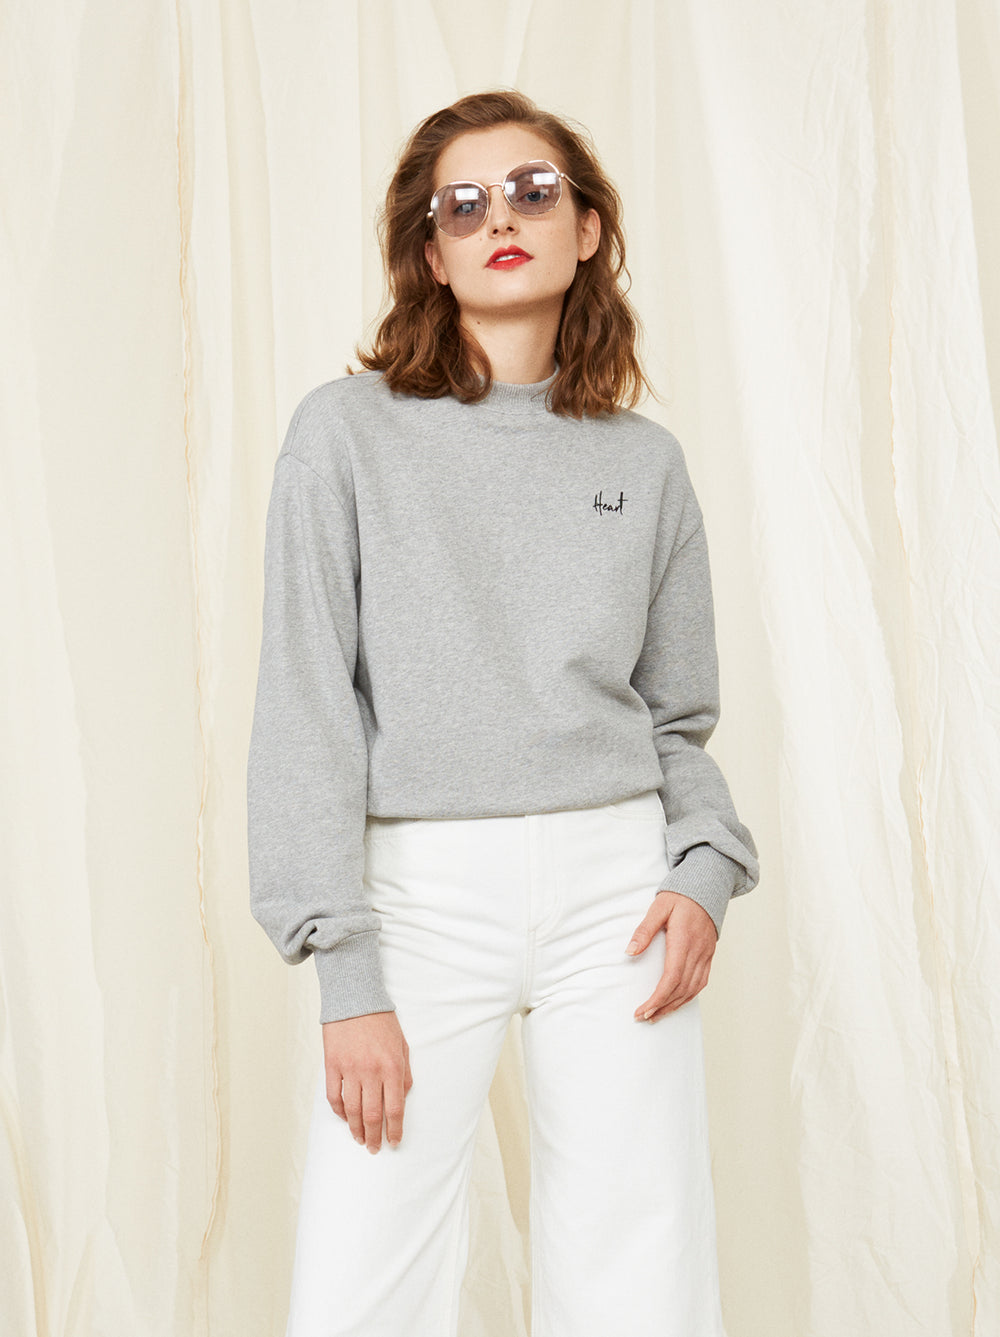 Luca Grey Heart Sweatshirt by KITRI Studio | Women's Grey Oversized Sweatshirts